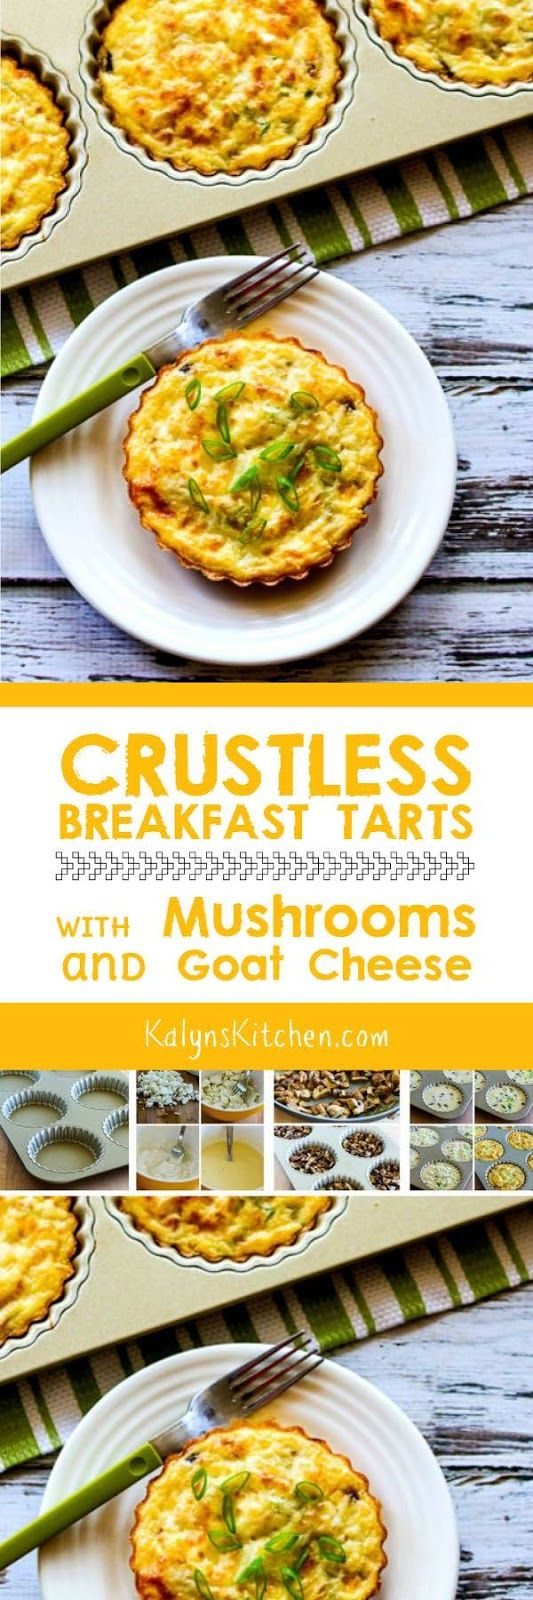 Crustless Breakfast Tarts with Mushrooms and Goat Cheese are low-carb, Keto, low-glycemic, gluten-free, meatless, and South Beach Diet friendly. These are delicious for a special breakfast, or make them on the weekend and reheat for a yummy breakfast during the week! [found on KalynsKitchen.com]